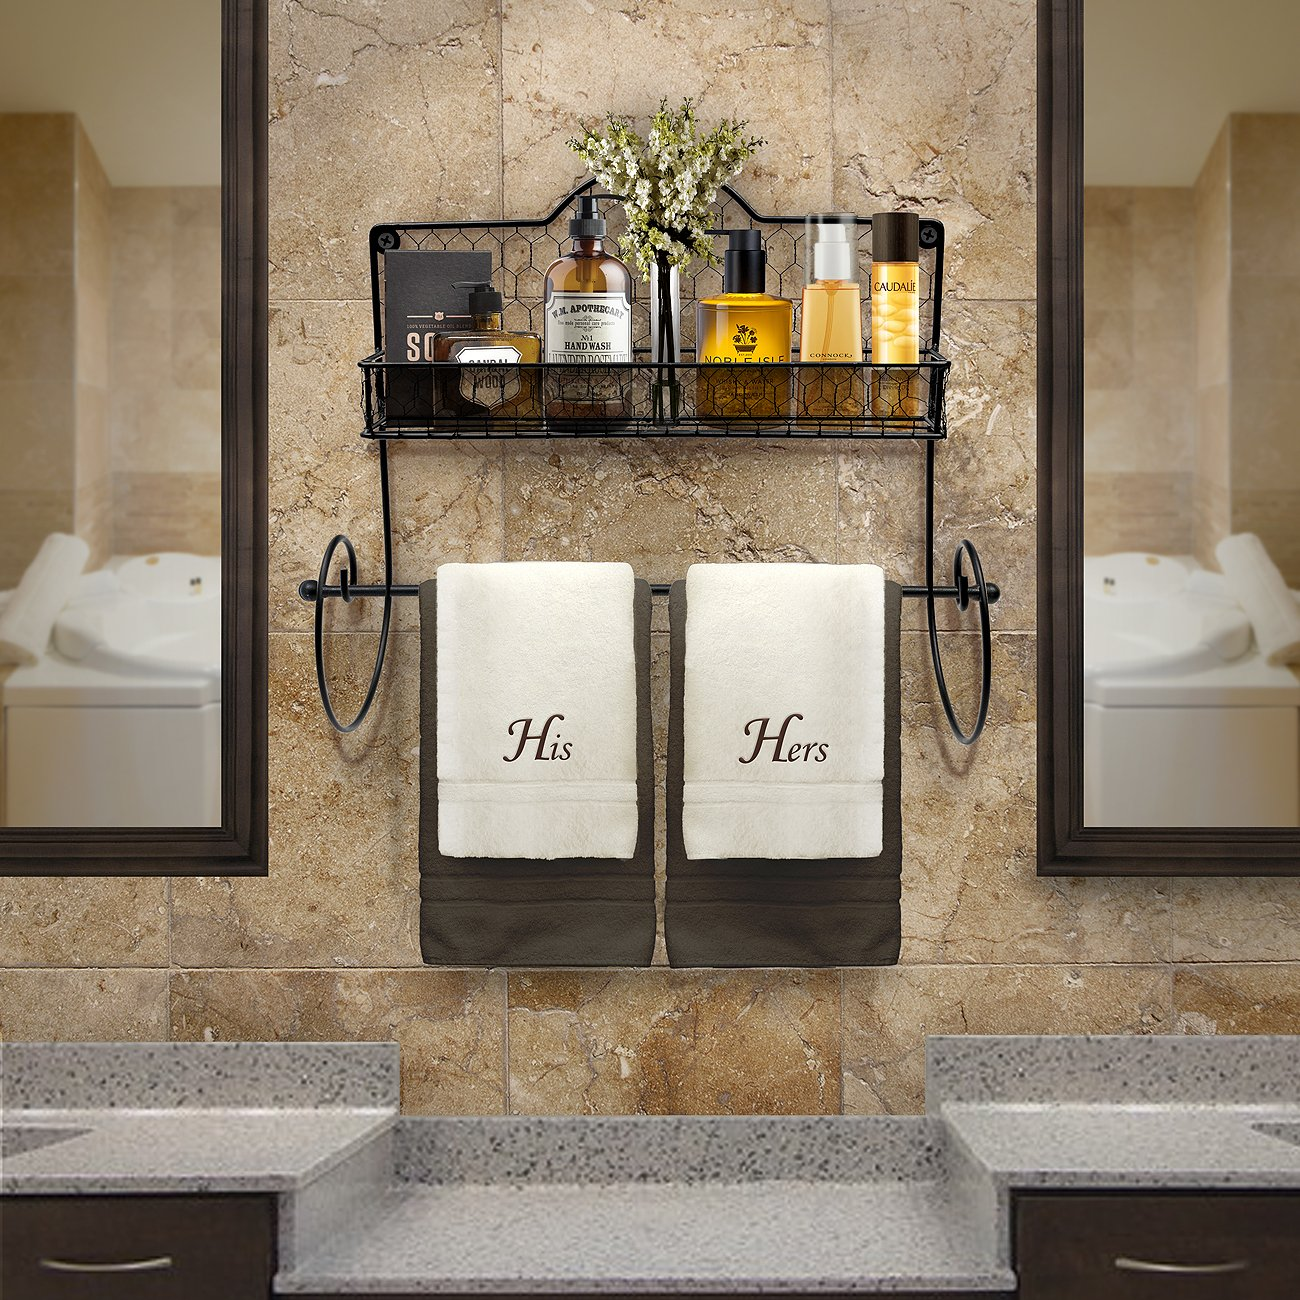 Sorbus Paper Towel Holder, Spice Rack and Multi-Purpose Shelf—Wall Mounted Storage for Kitchen Accessories, Towels, Toiletries, Supplies, etc.—Ideal for Kitchen/Bathroom—Made of Steel (Black) by Sorbus (Image #5)